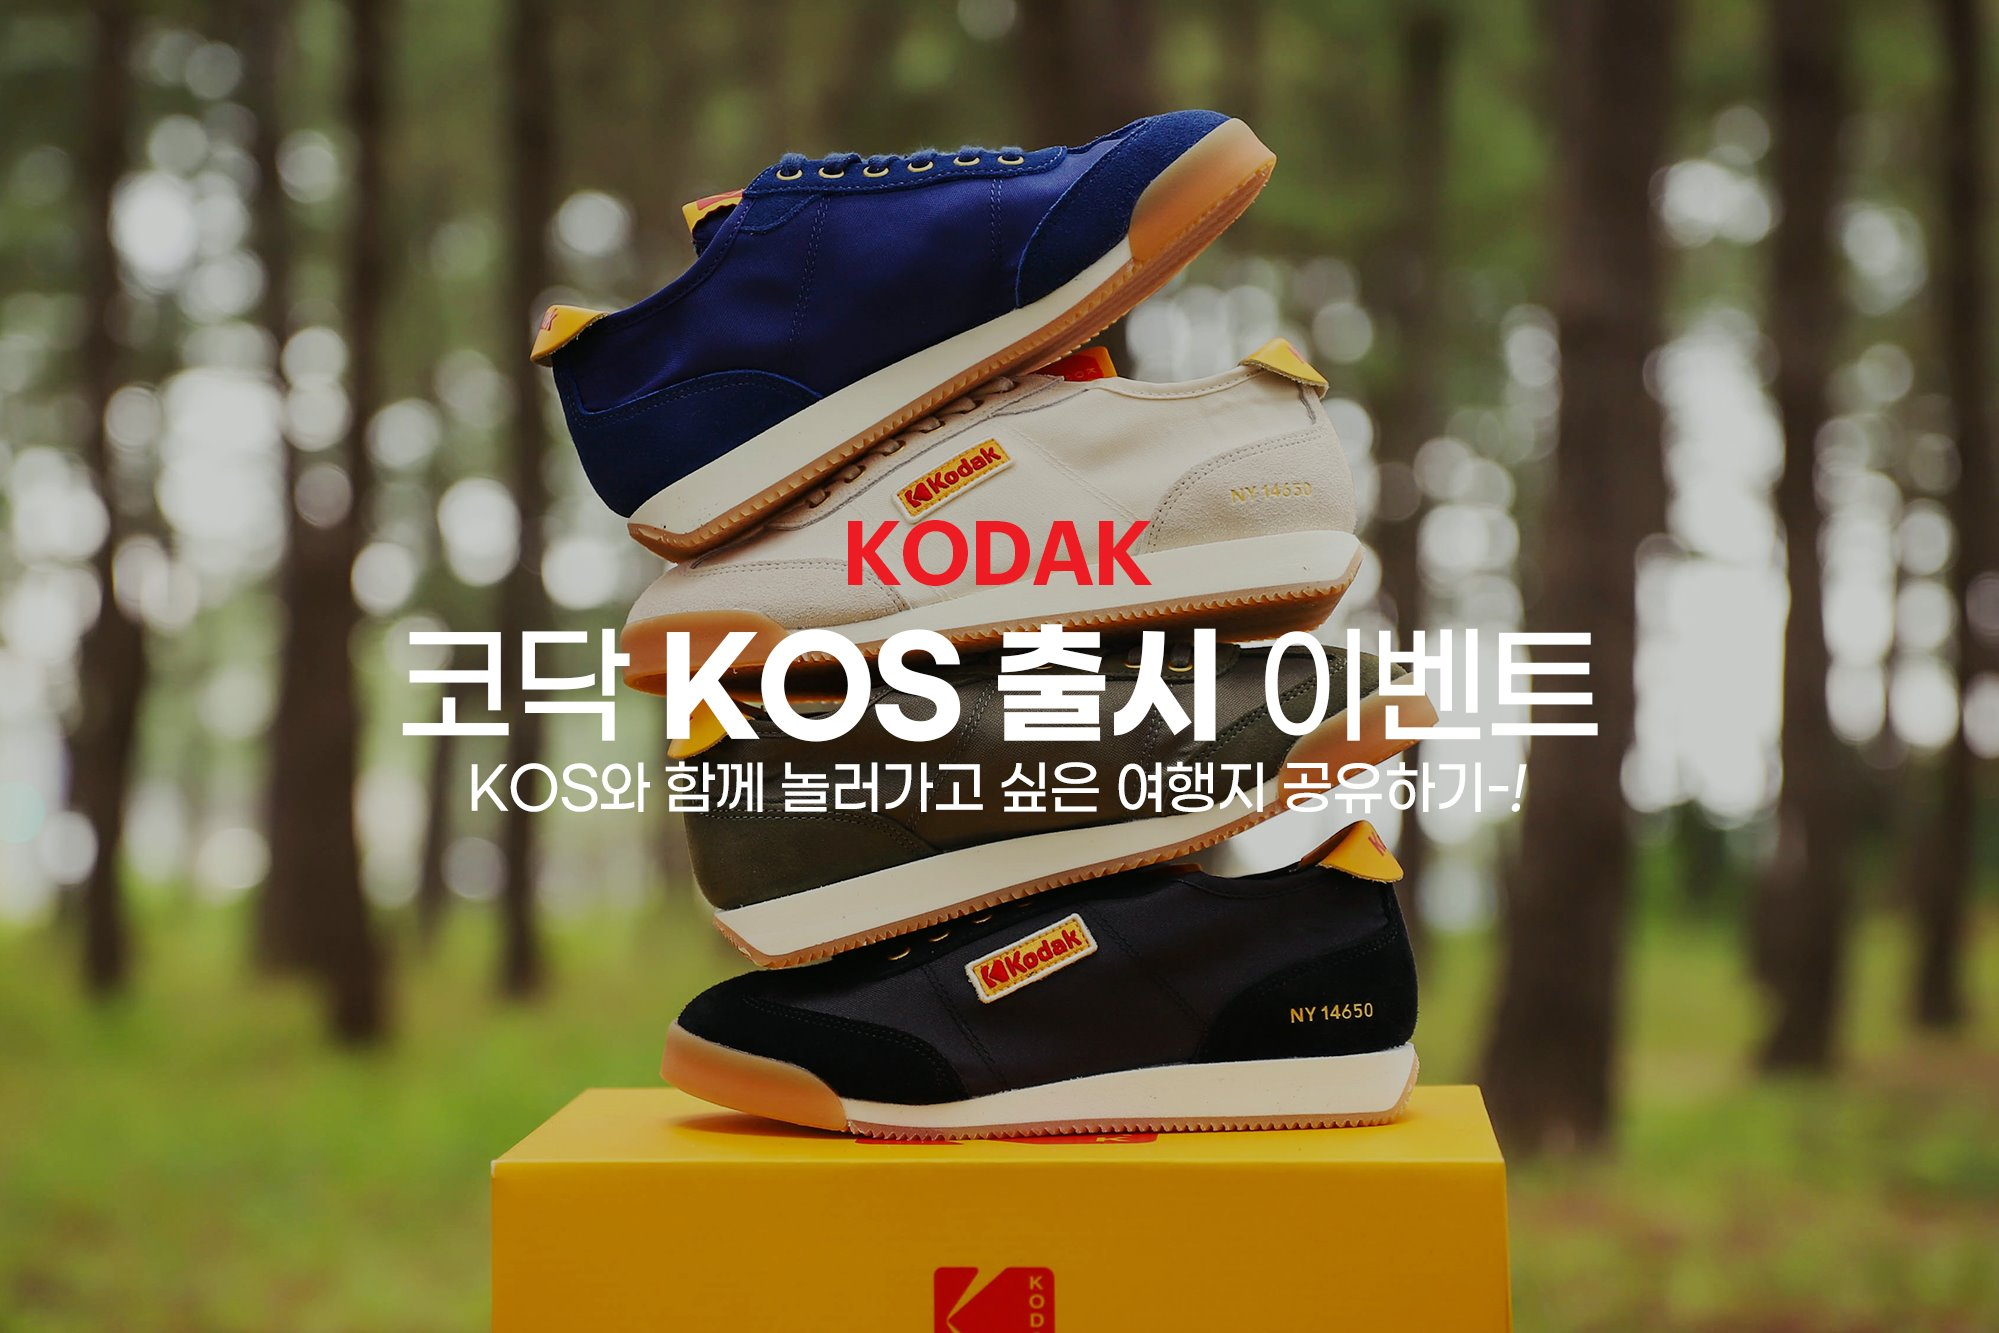 https://www.hilightbrands-kodak.co.kr/web/product/medium/202008/2dbf187f654d32ef2ea8c2a0130058b3.jpg